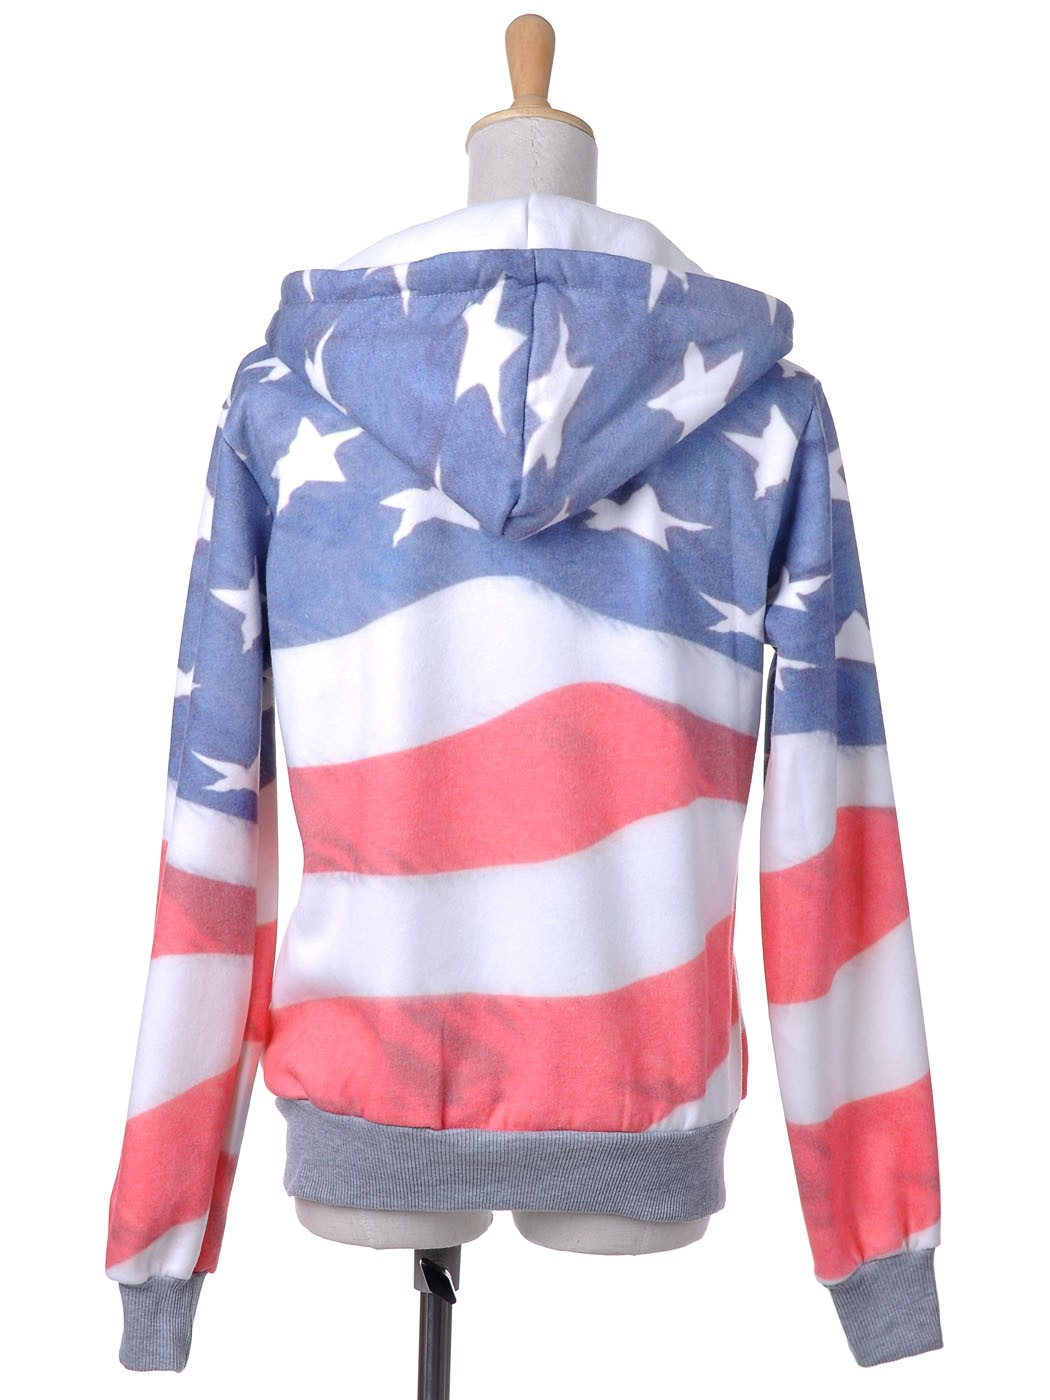 Kaci red white and blue american flag zip up fashion hoodie jacket [y81515]